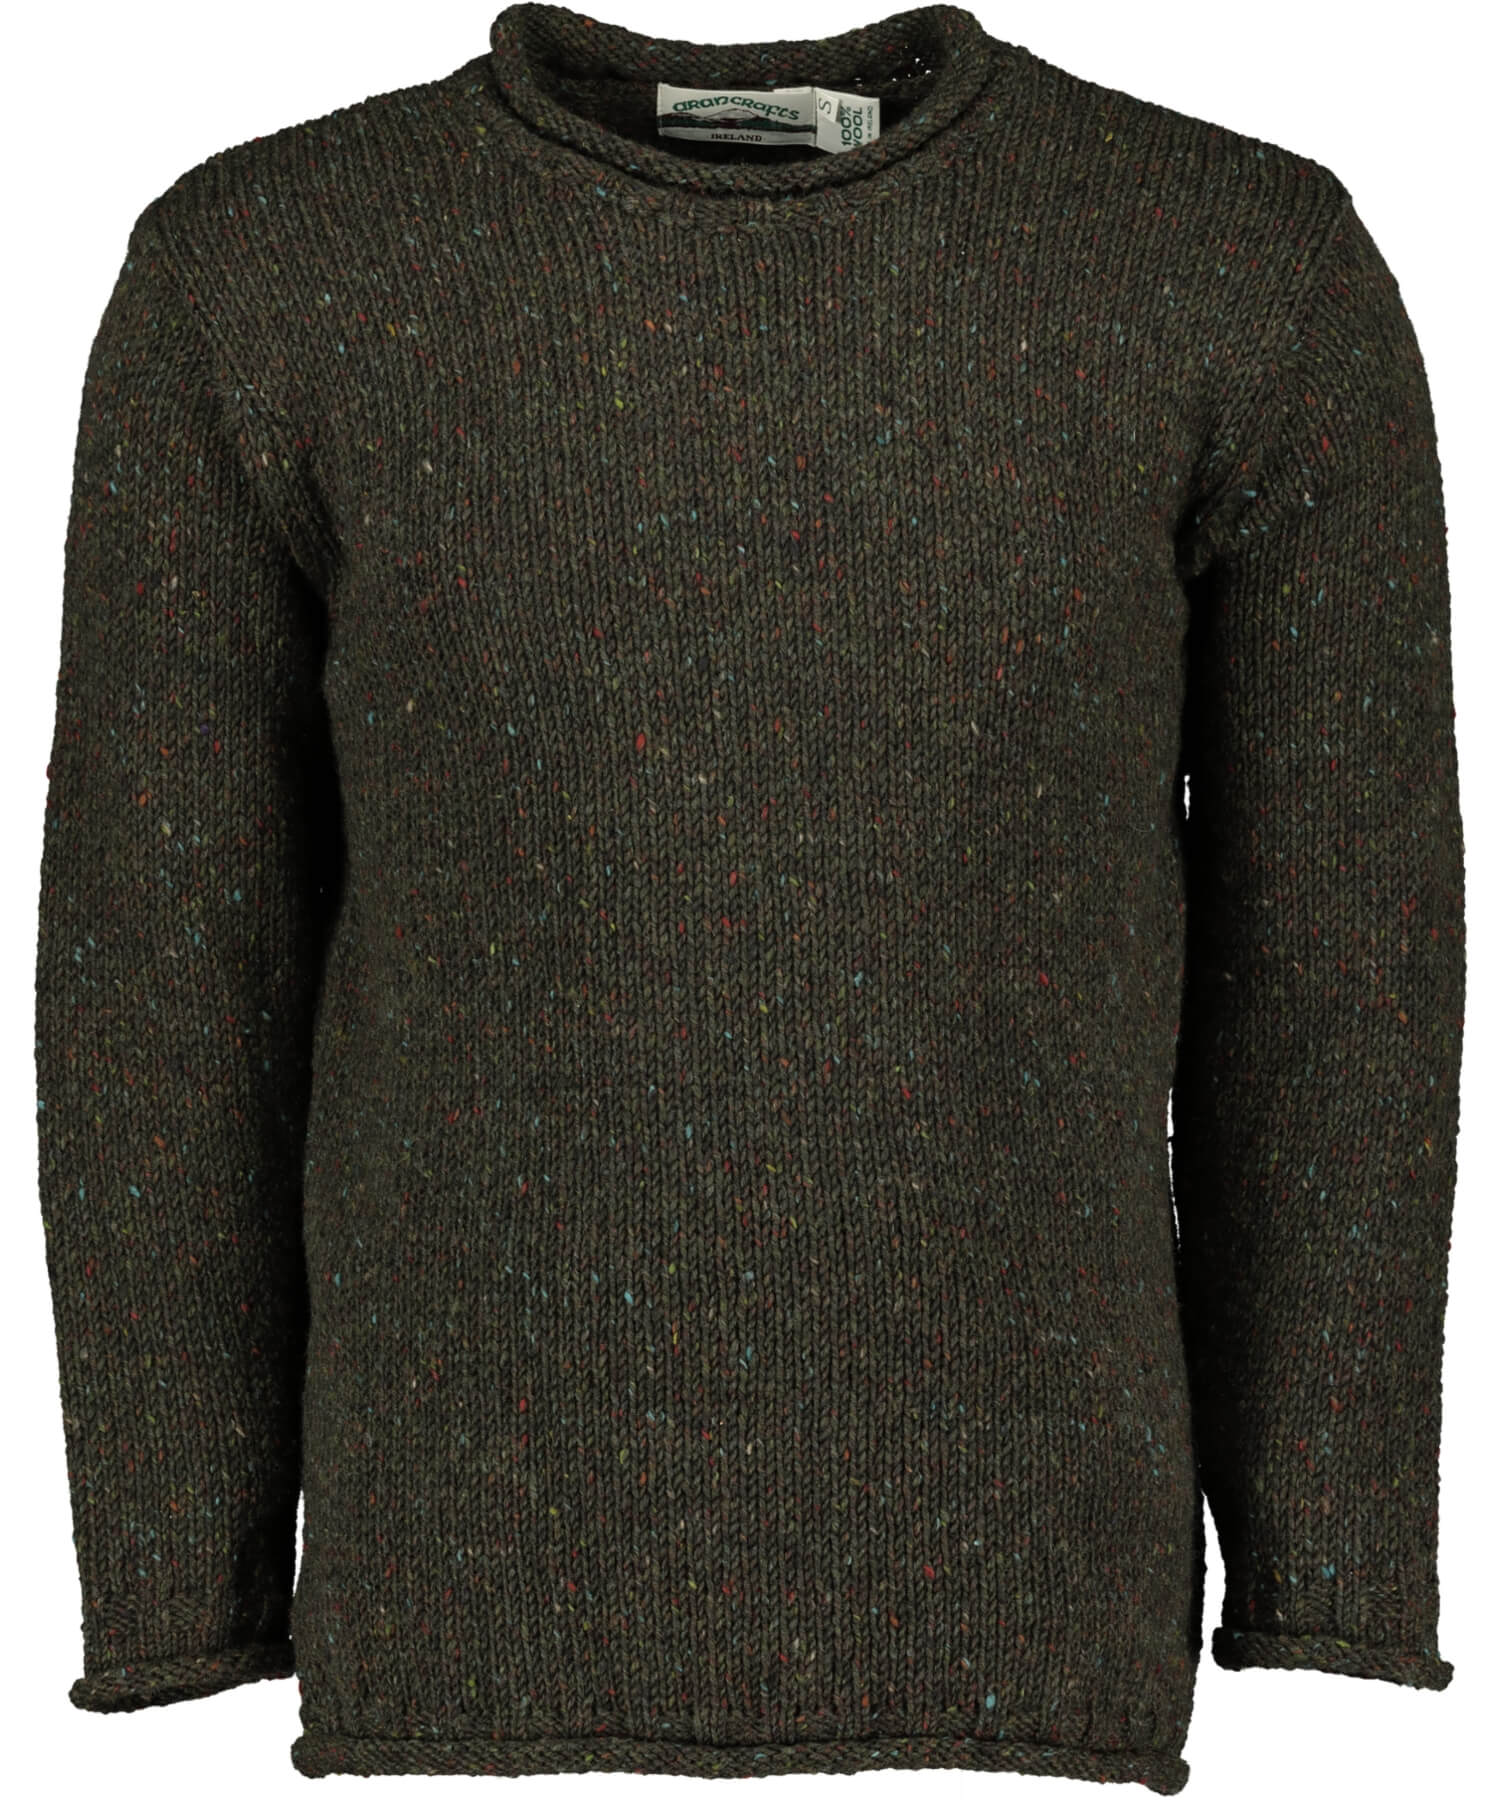 Glenties Curl Neck Sweater - Green Aran Crafts Mens Sweaters & Cardigans